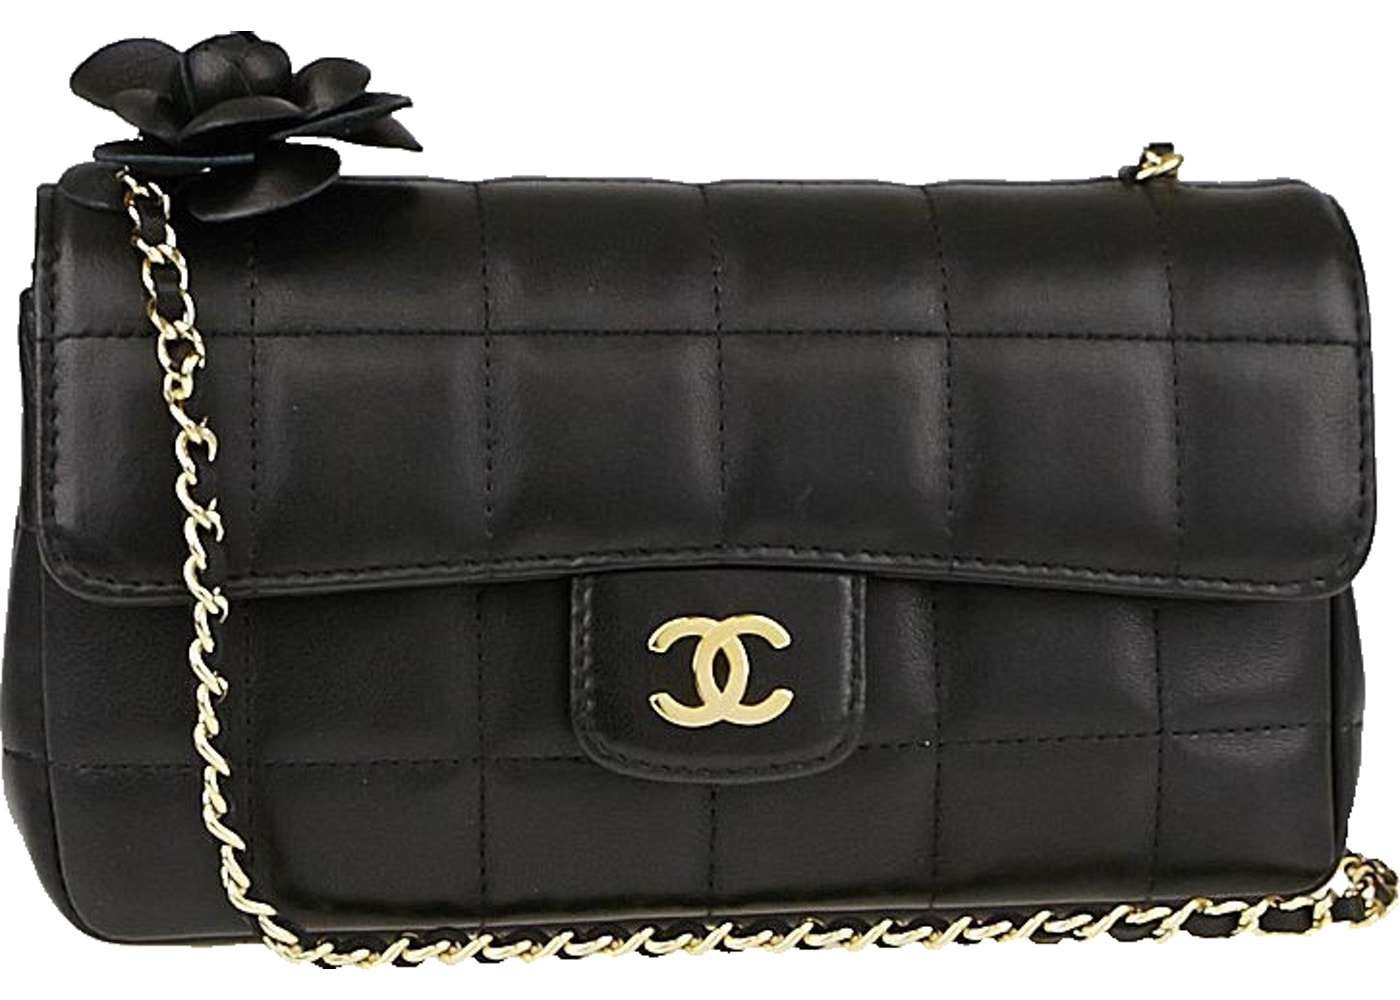 a03bcd6ac3fa Sell. or Ask. View All Bids. Chanel Chocolate Bar Flap Camellia Quilted  Mini Black